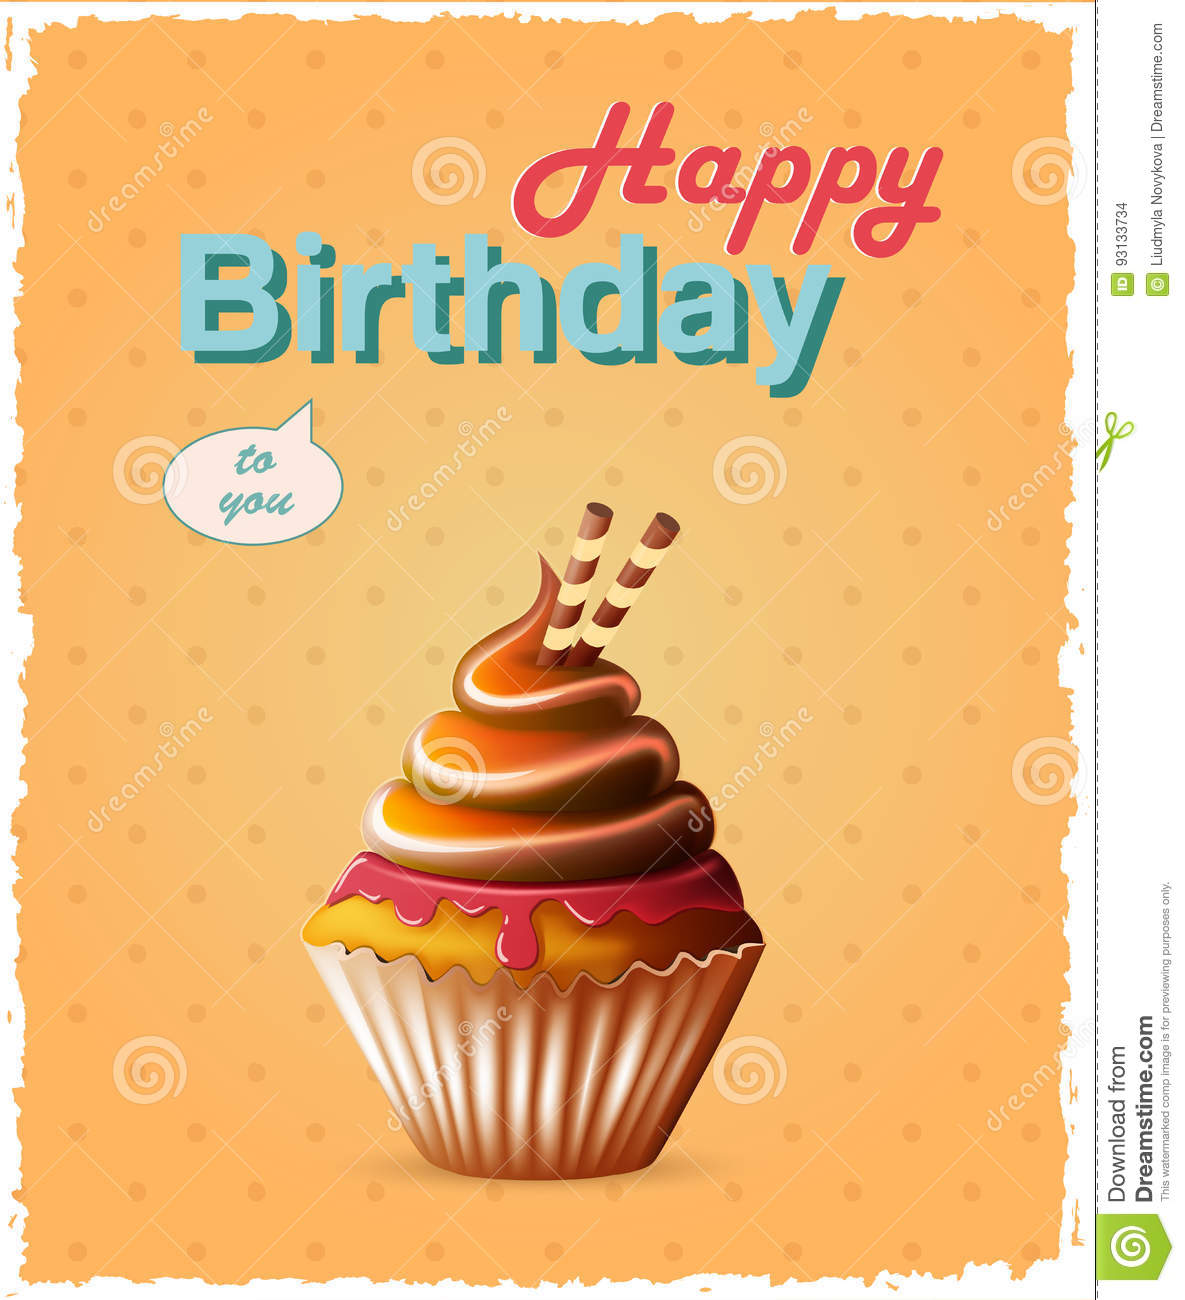 happy birthday template card with cake and text stock vector